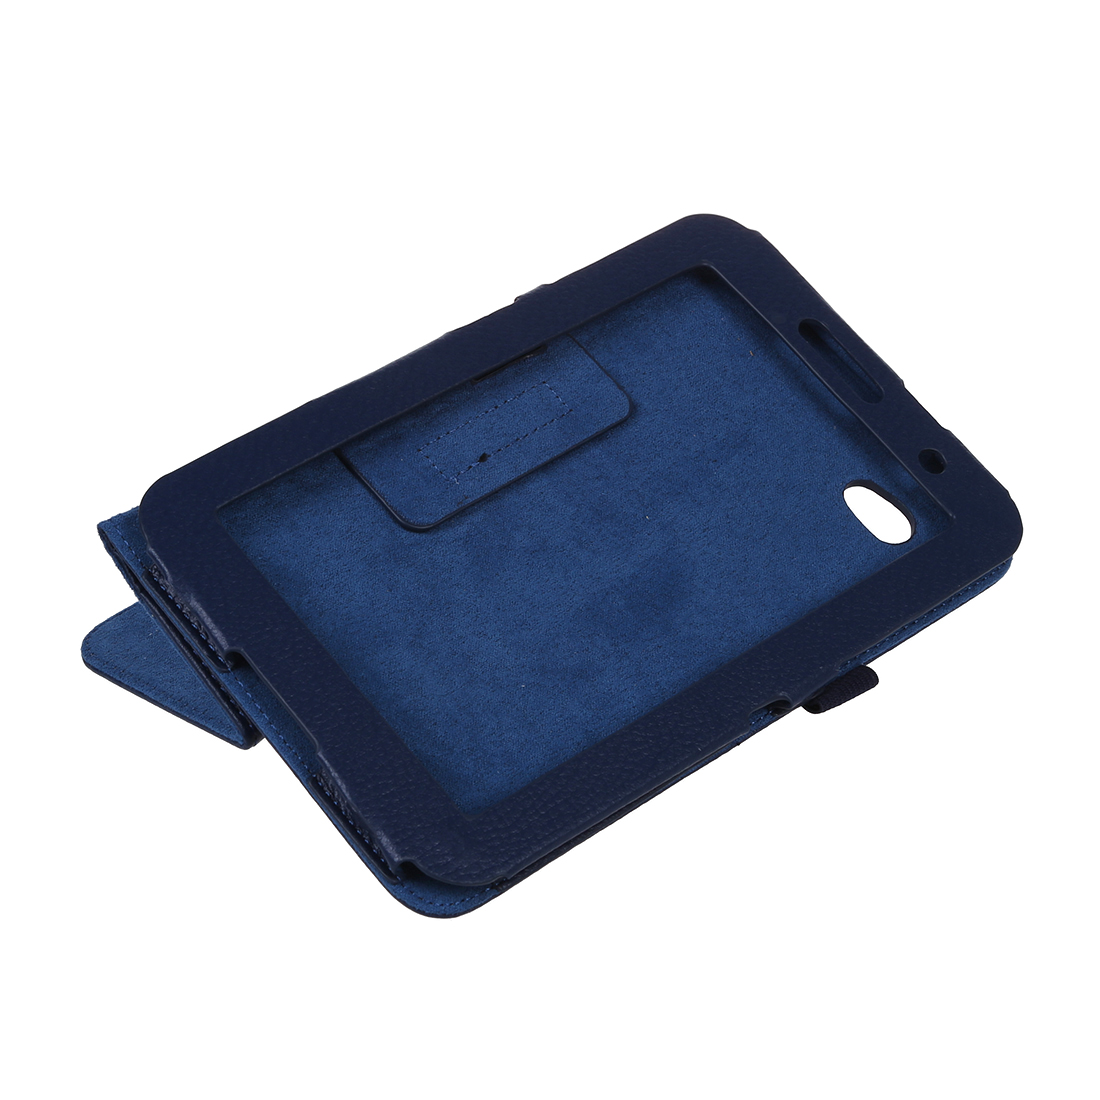 Leather Case For 7 Inch Samsung Galaxy Tab 2 P3100 P3110